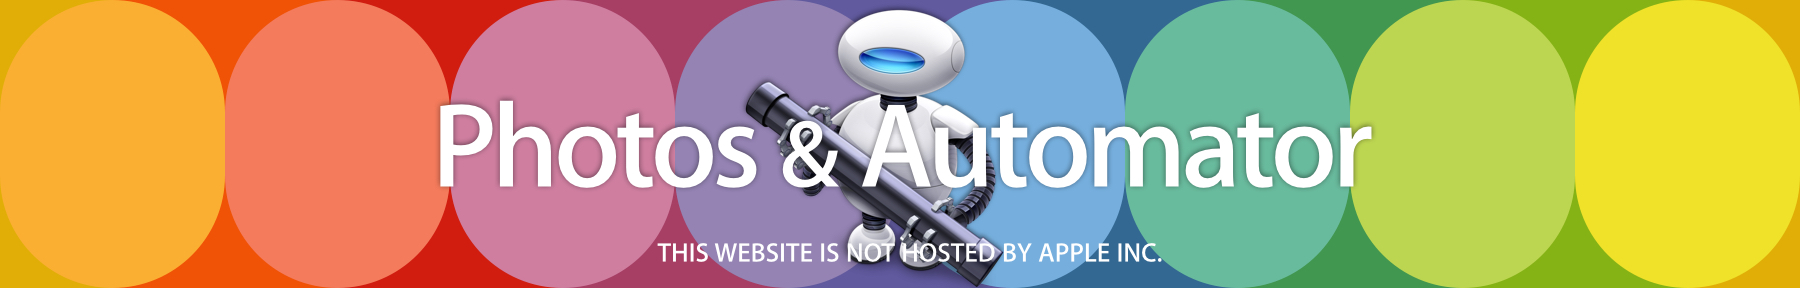 photos-automation-banner